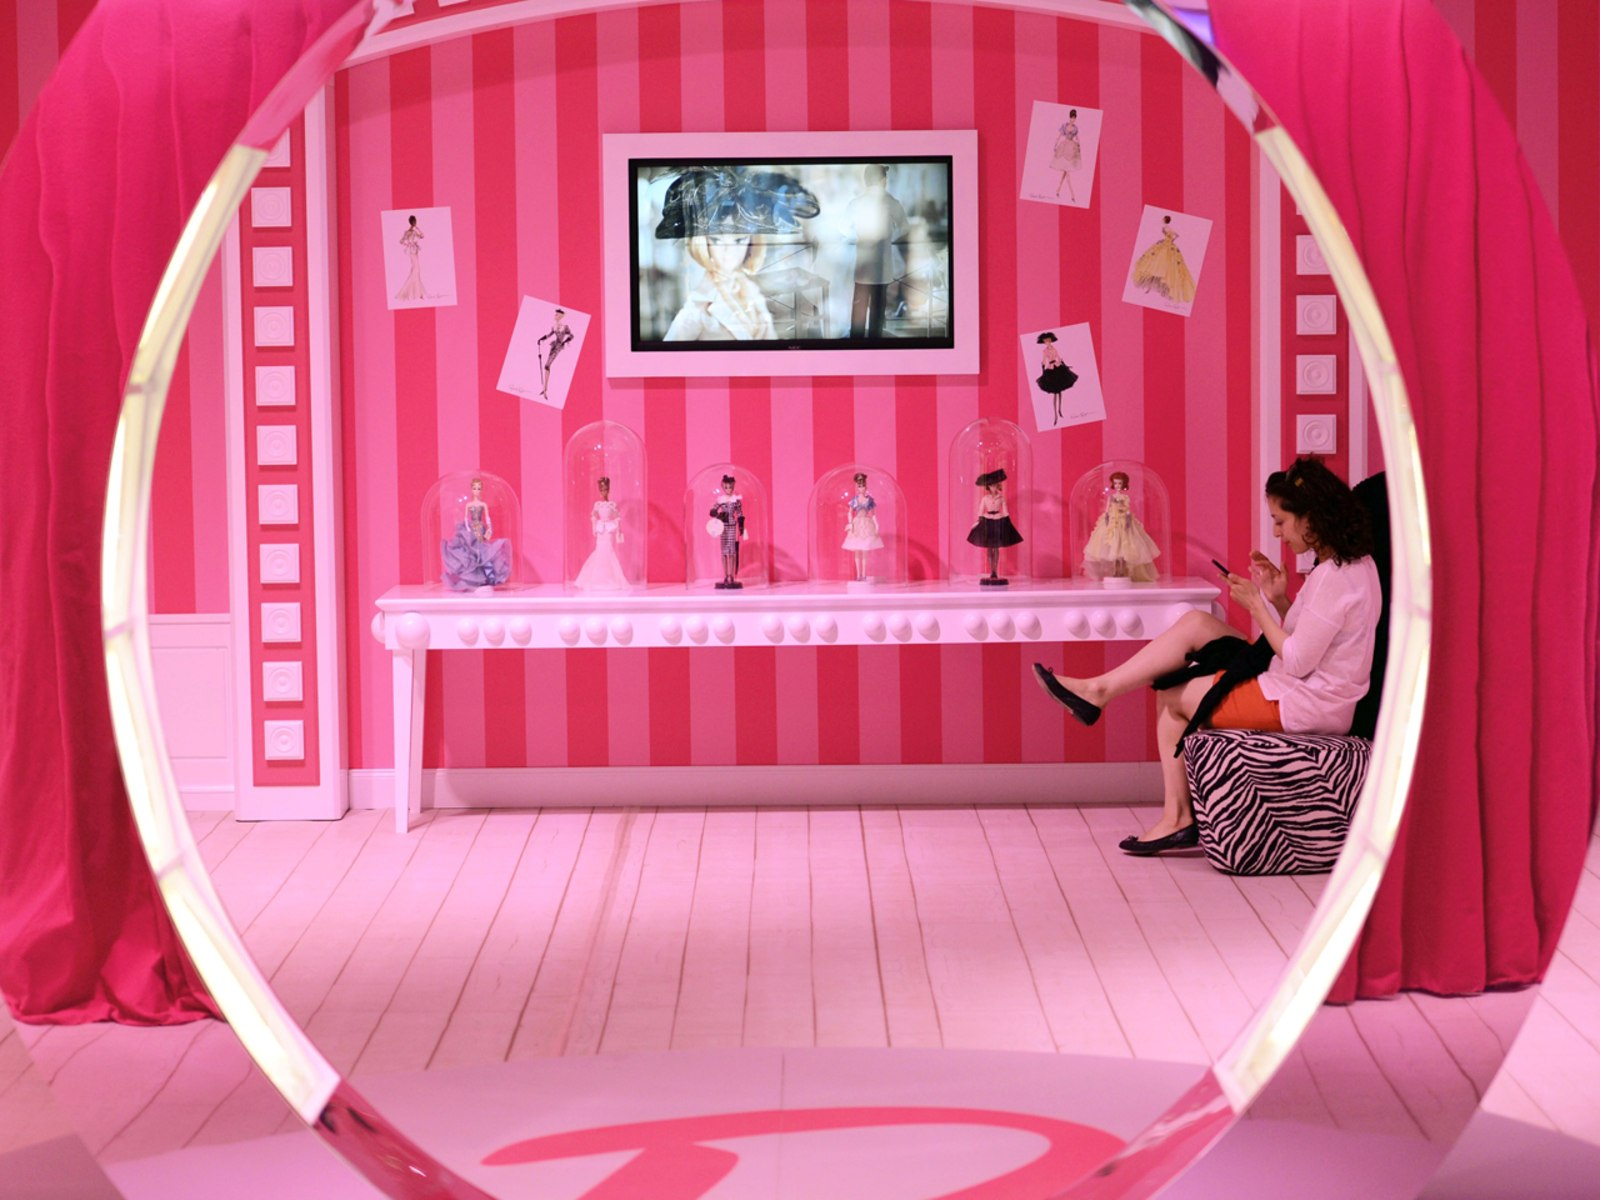 Image: Barbie Dreamhouse opened in Berlin